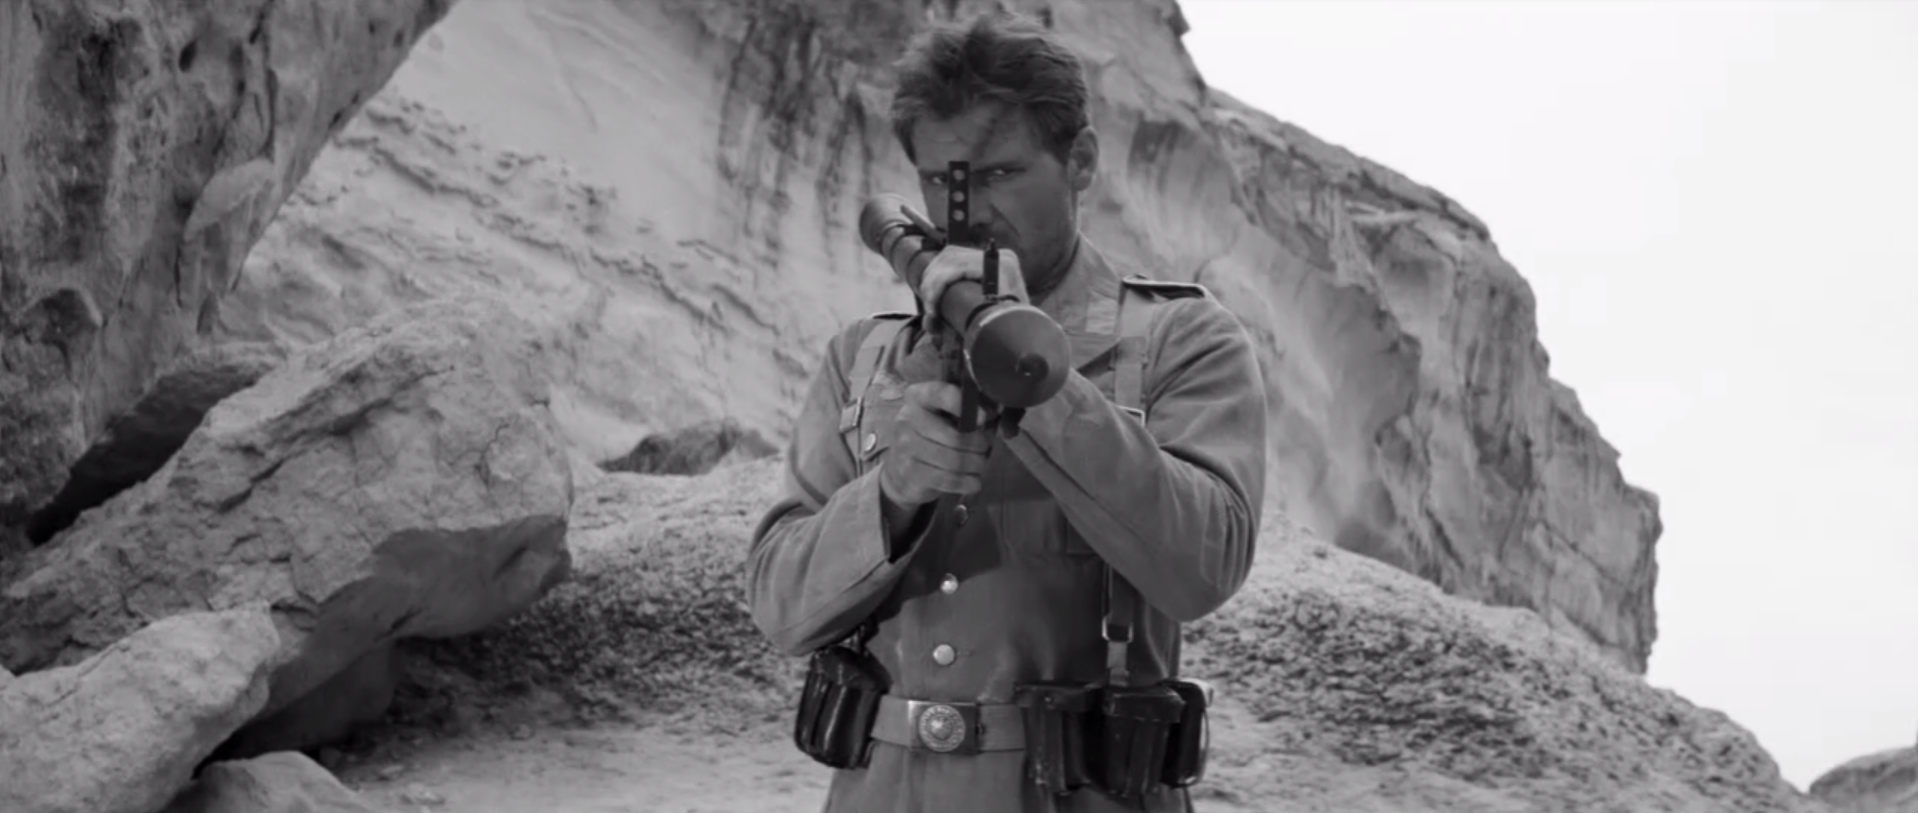 Steven Soderbergh made Raiders of the Lost Ark into a rad silent film